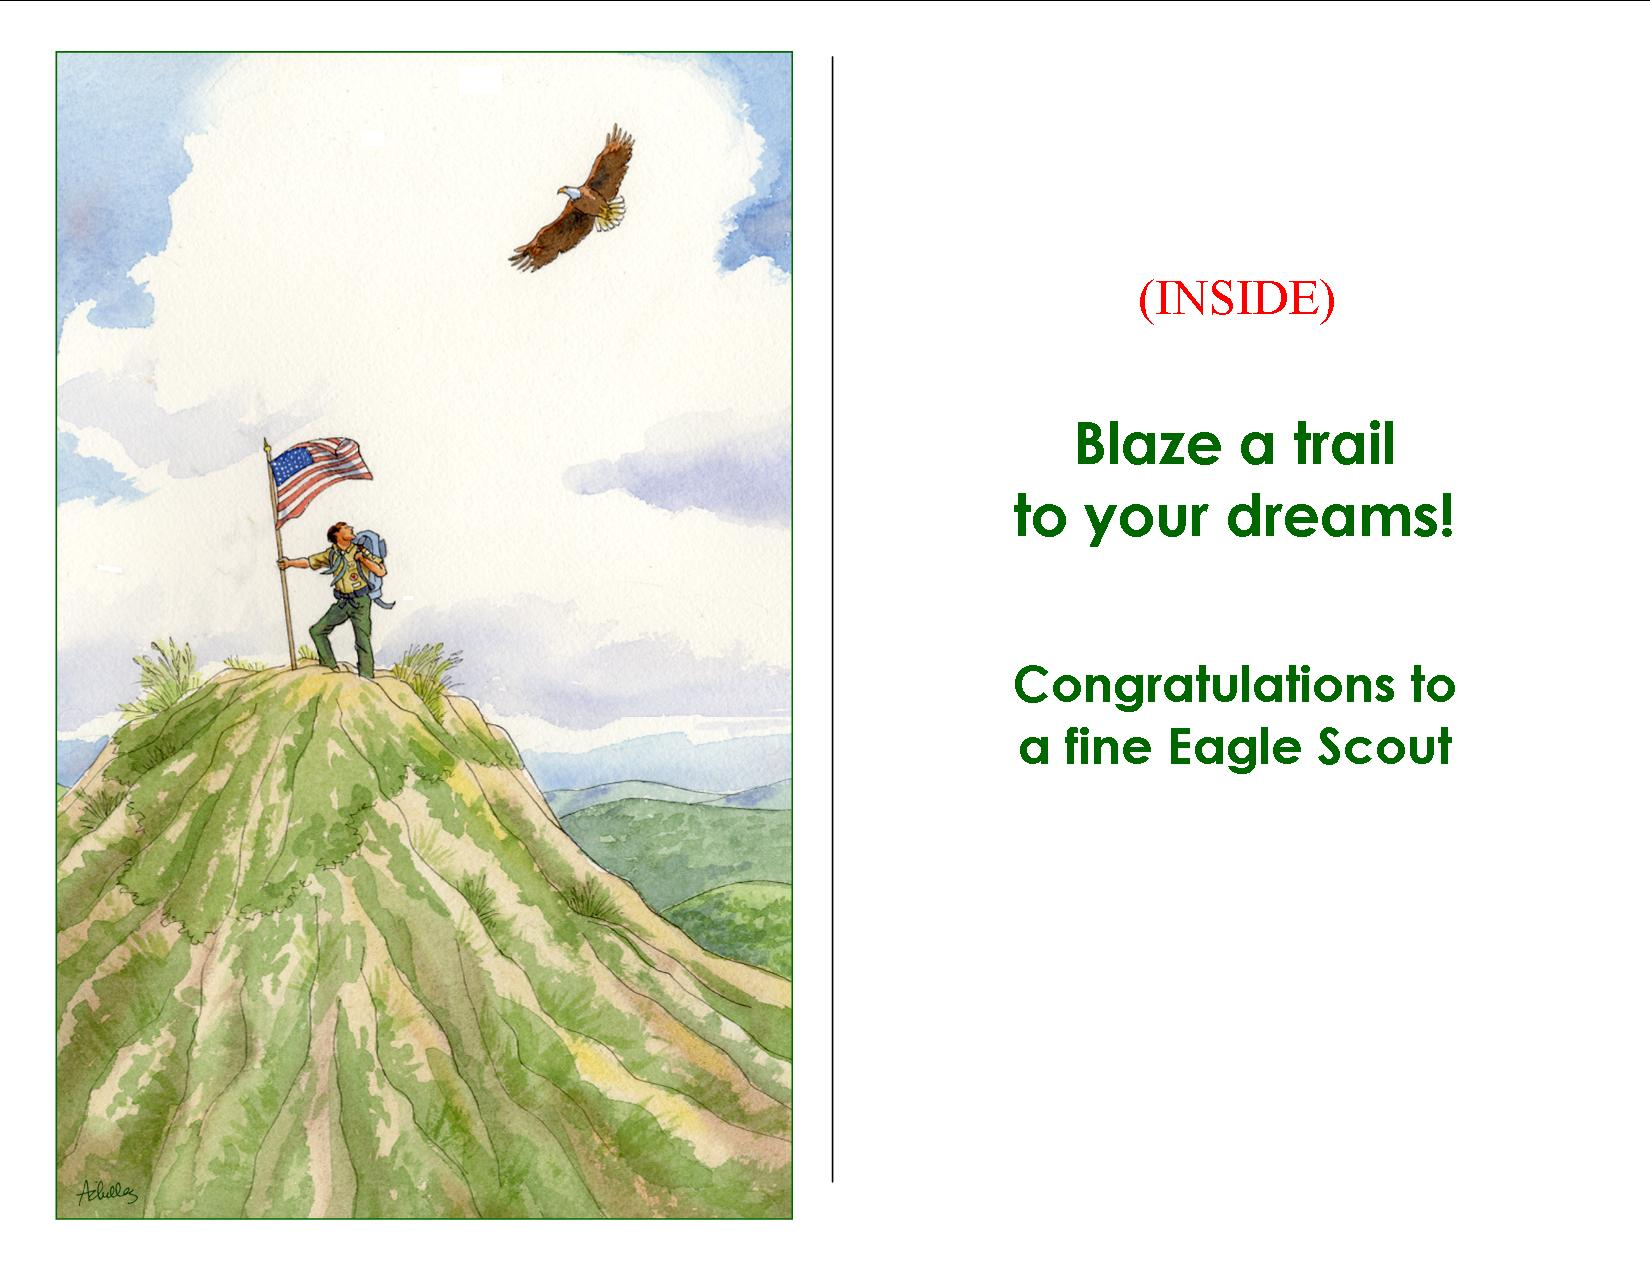 Eagle Scout On Hilltop Card